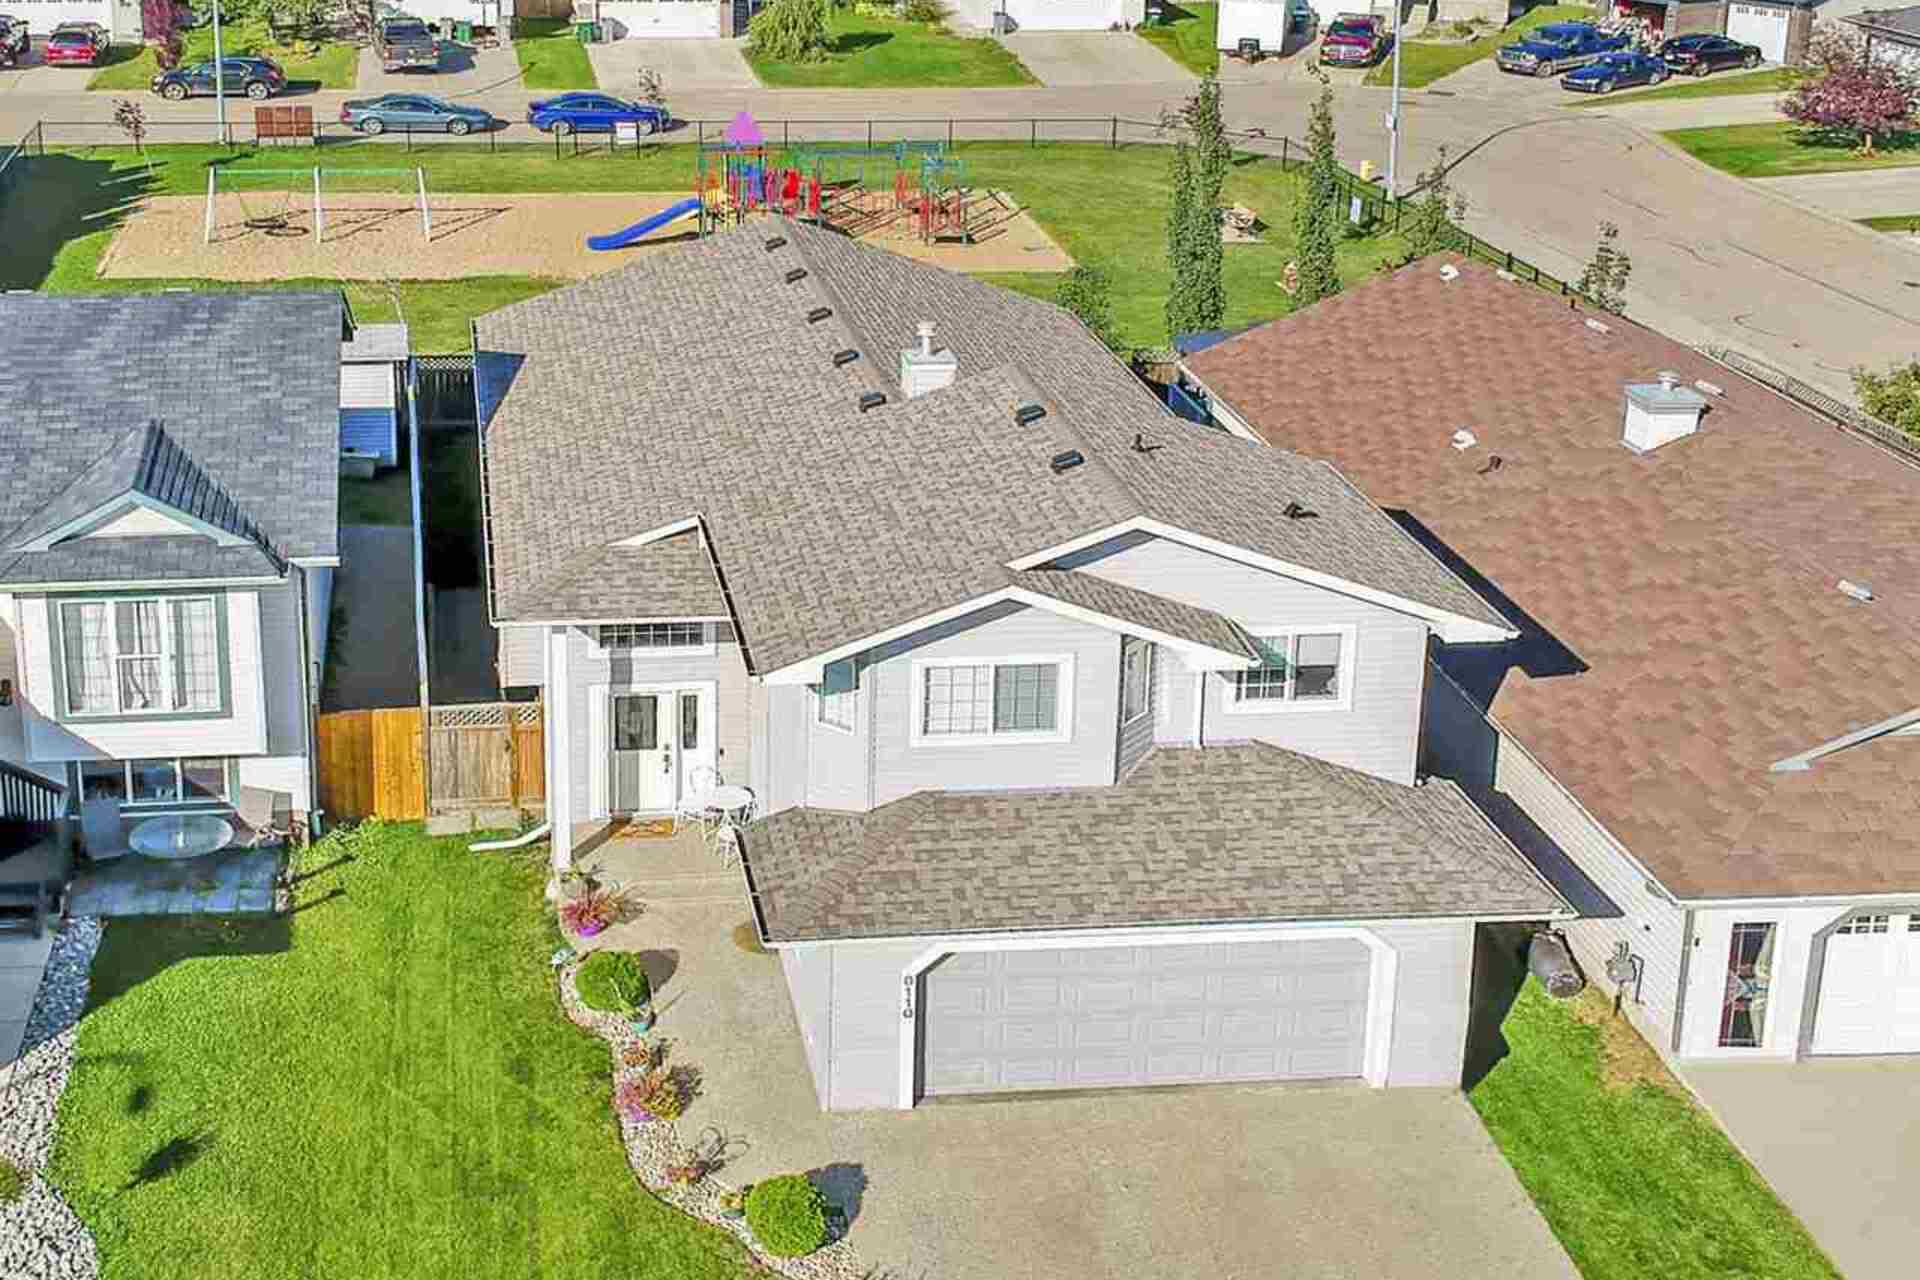 8110 96 Street, South Glens, Morinville